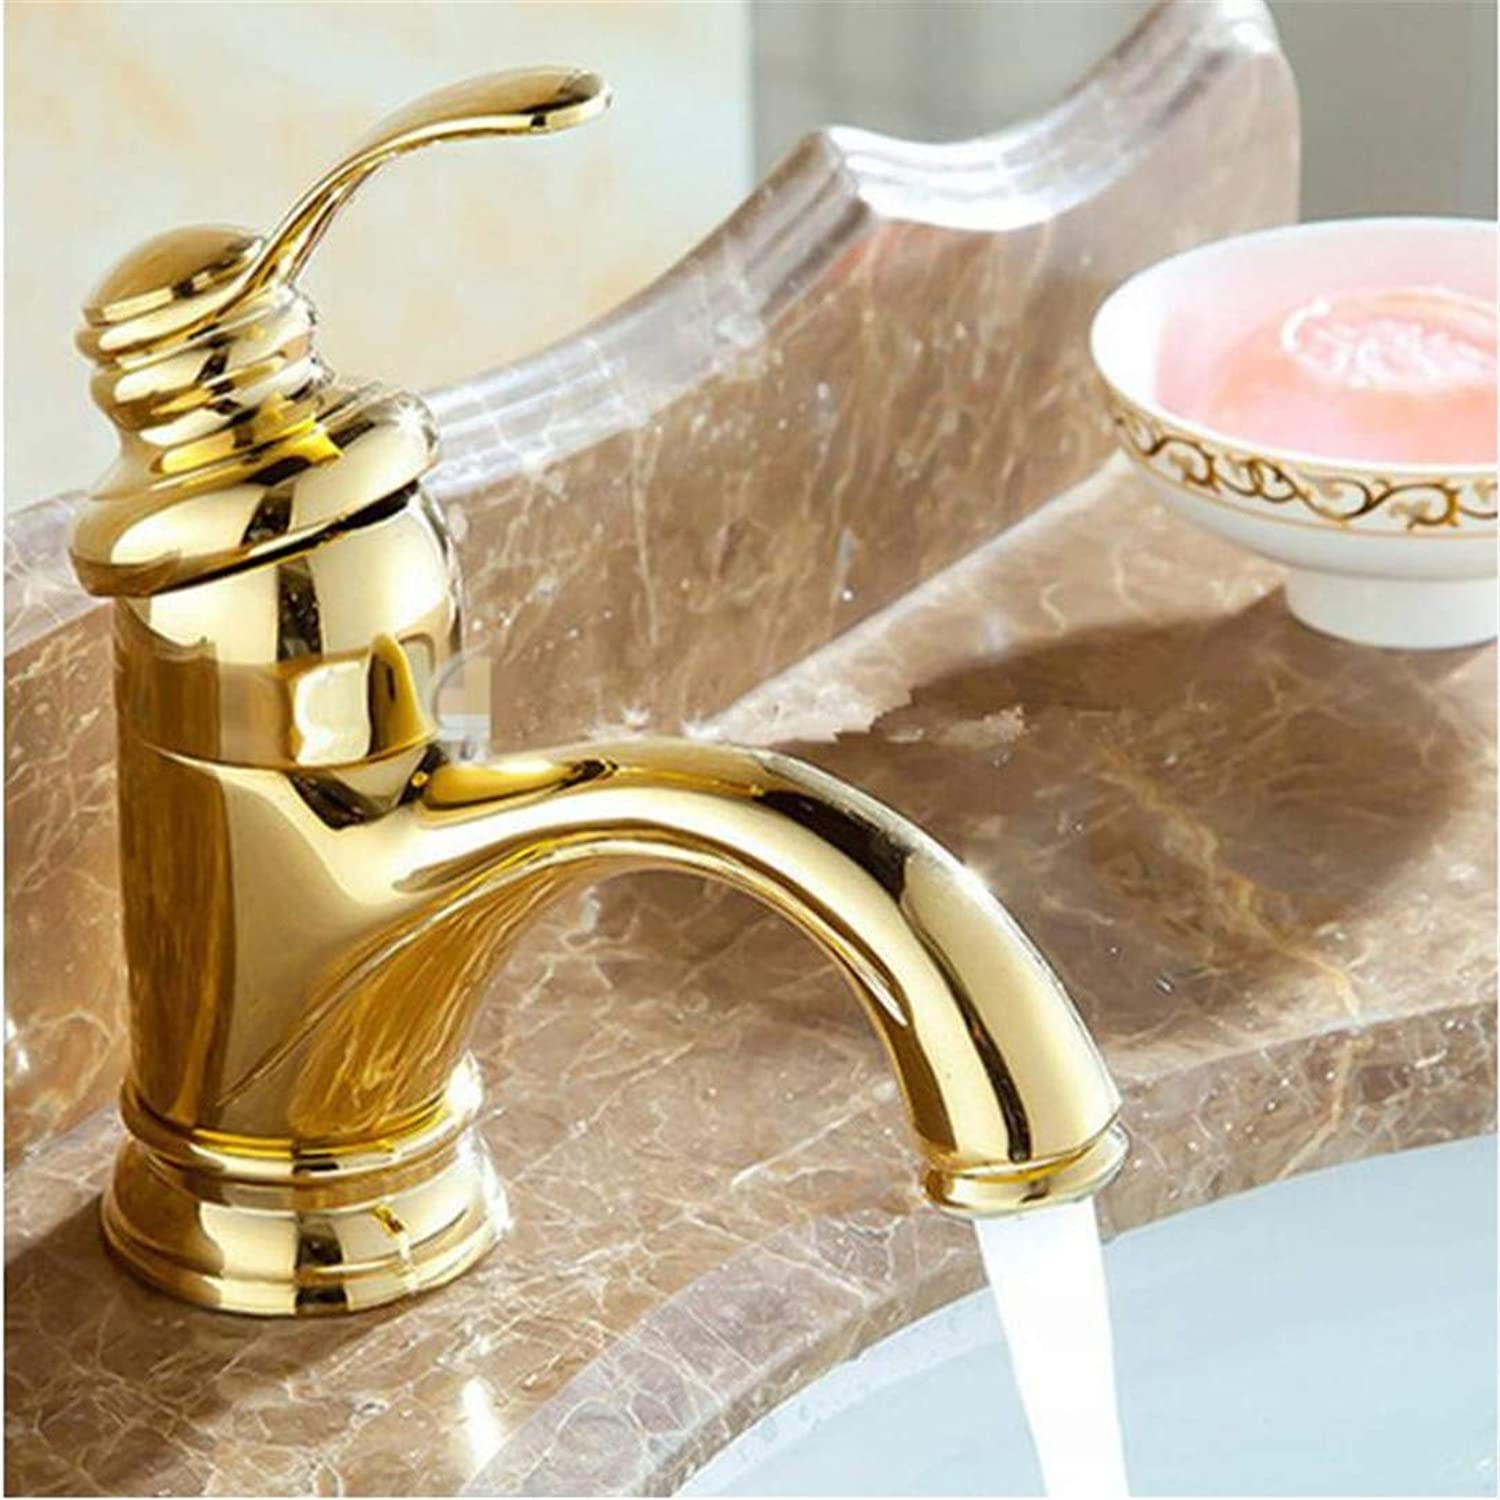 Faucets Basin Mixer golden Bathroom Basin Faucet New Luxury Single Handle Hot and Cold Tap